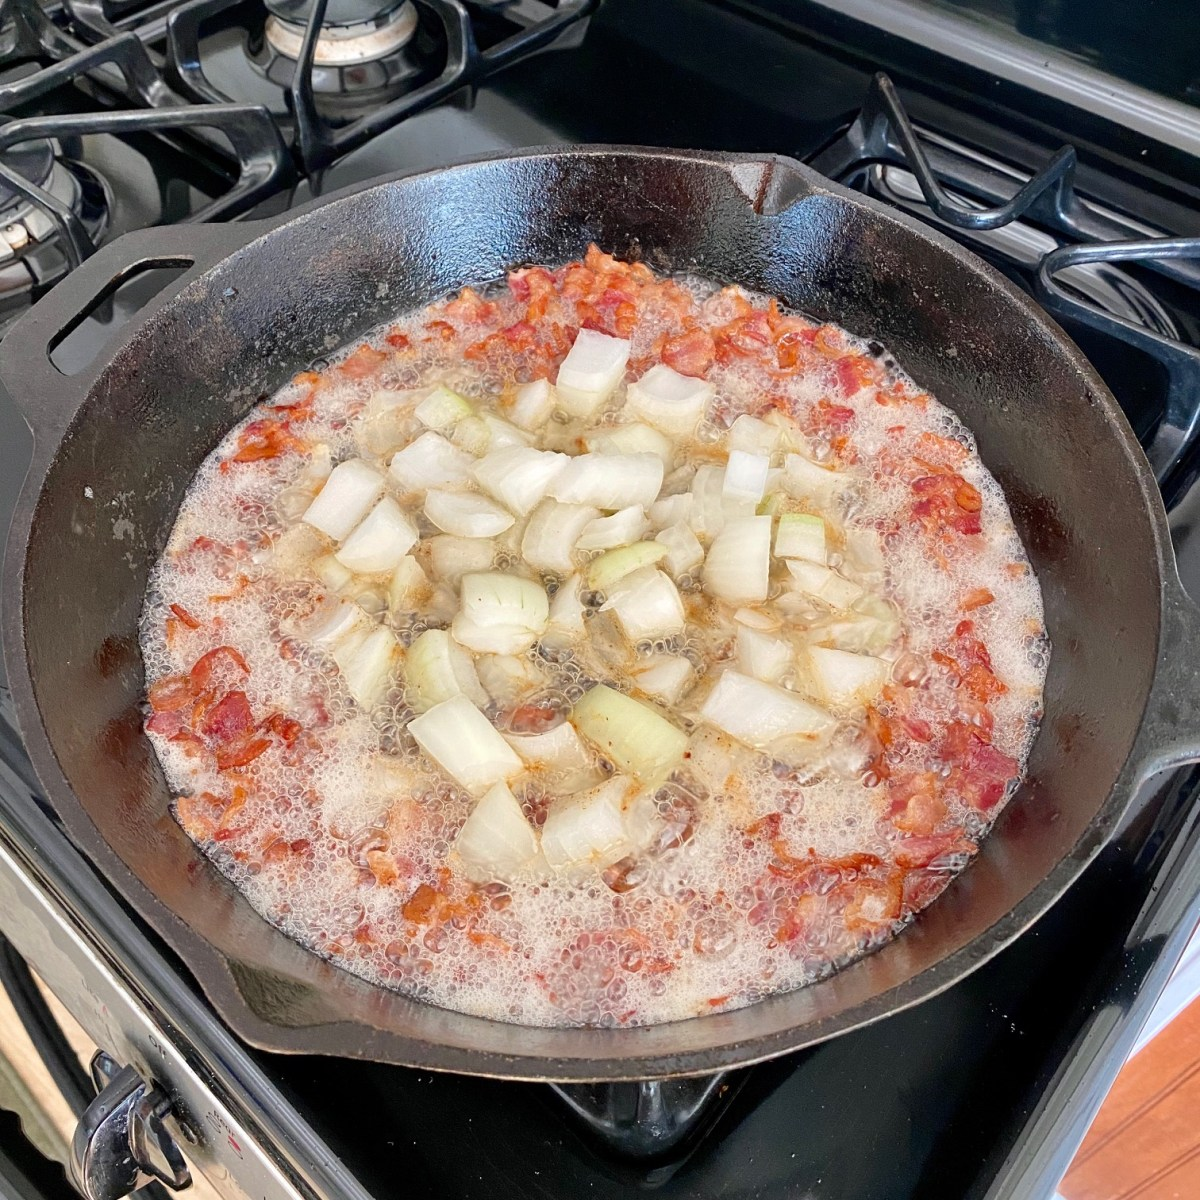 Chopped onions and bacon cooking in a cast iron skillet on a stovetop. #castironrecipes #breakfast #breakfastskillet #skilletrecipes #onepanrecipes #baconandeggs